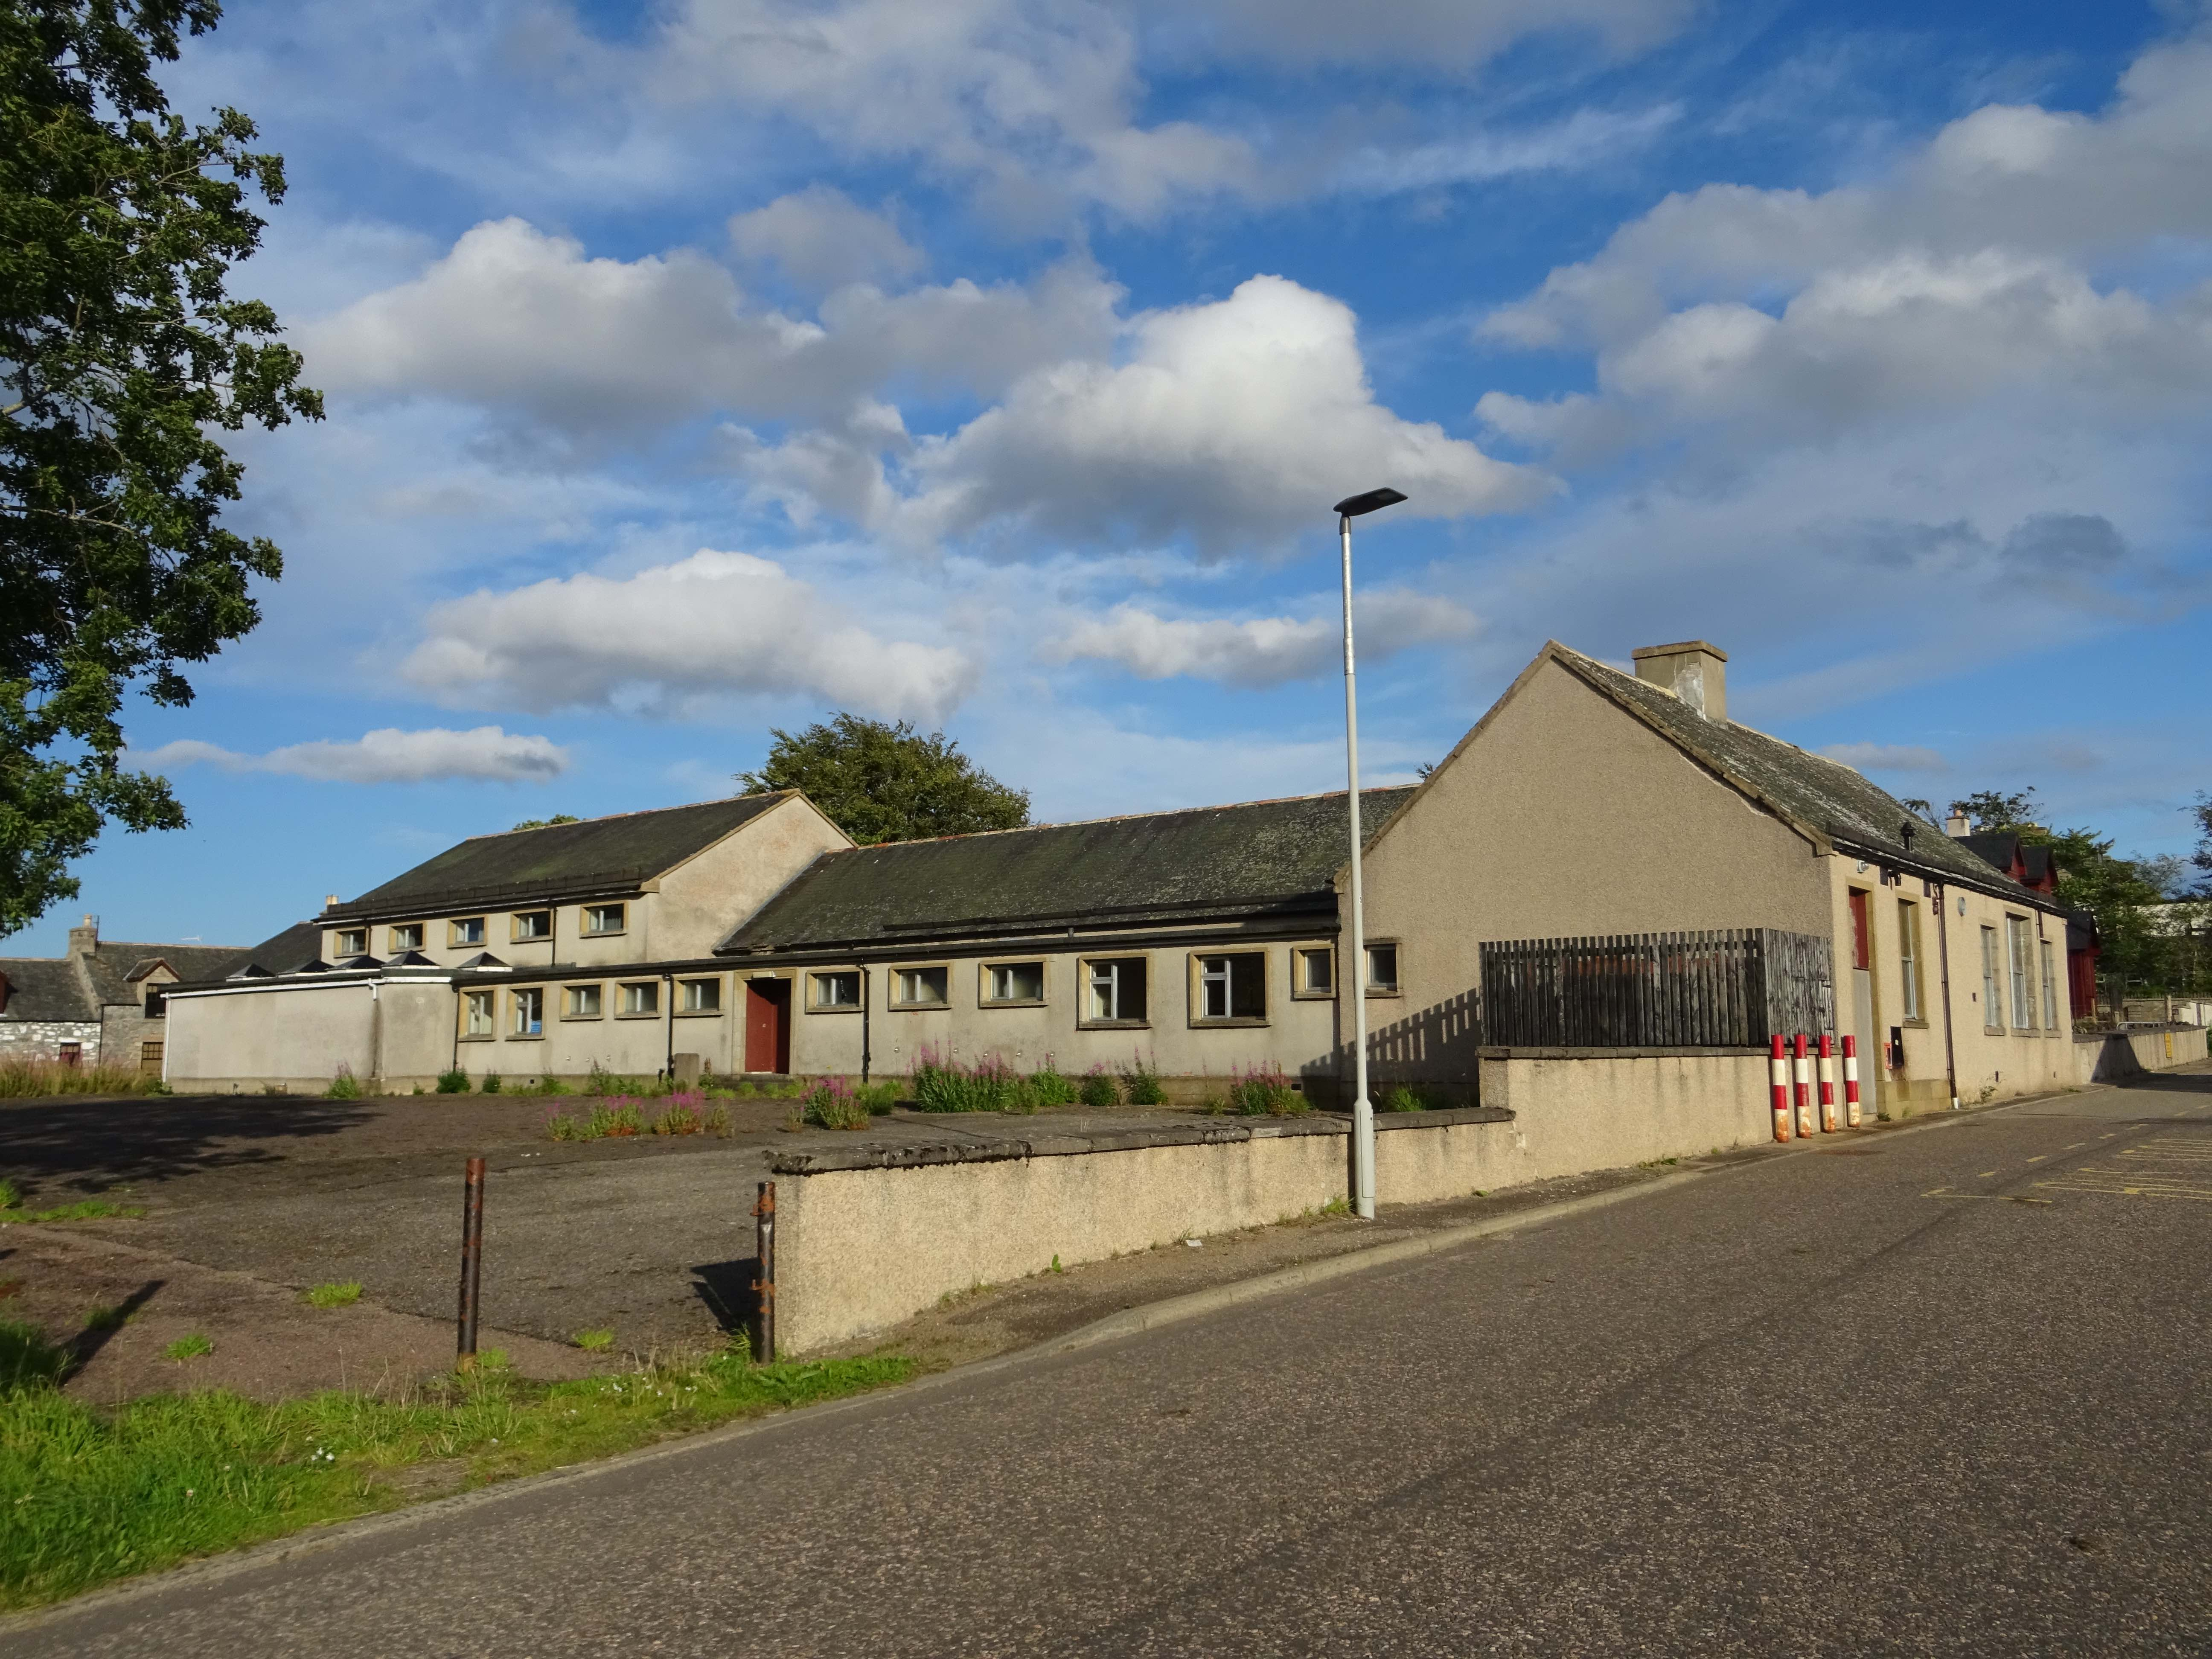 Tomintoul Affordable Housing Share Your Views Tomintoul